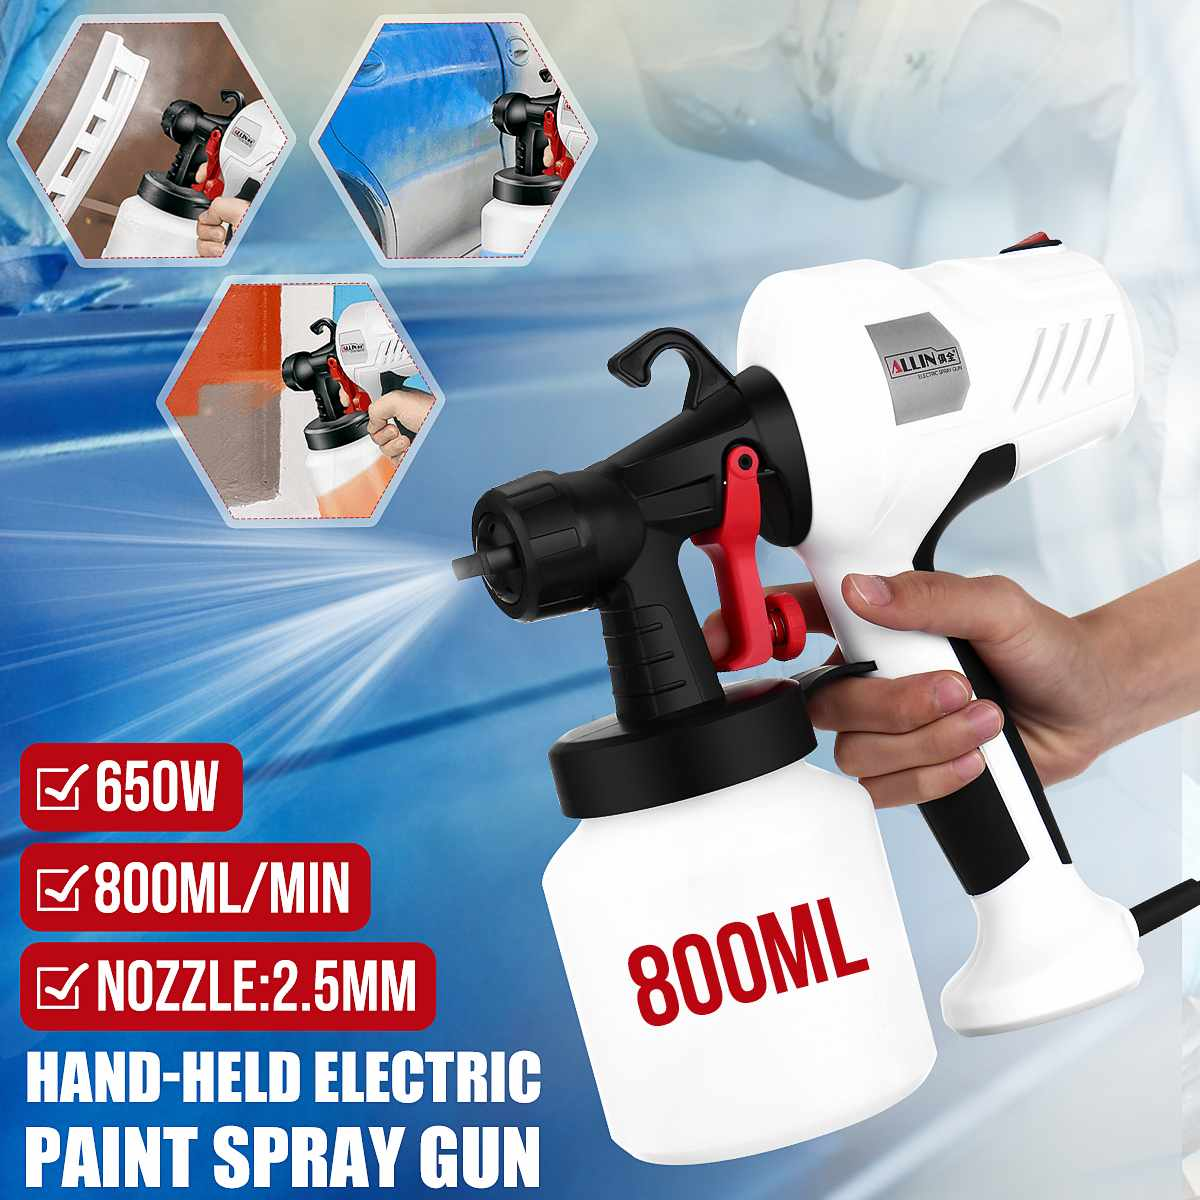 2.5MM Nozzle Spray Guns Paint 650W 220V 800ML High Power Spray Guns Home Electric Paint Sprayer Easy Spraying Clean